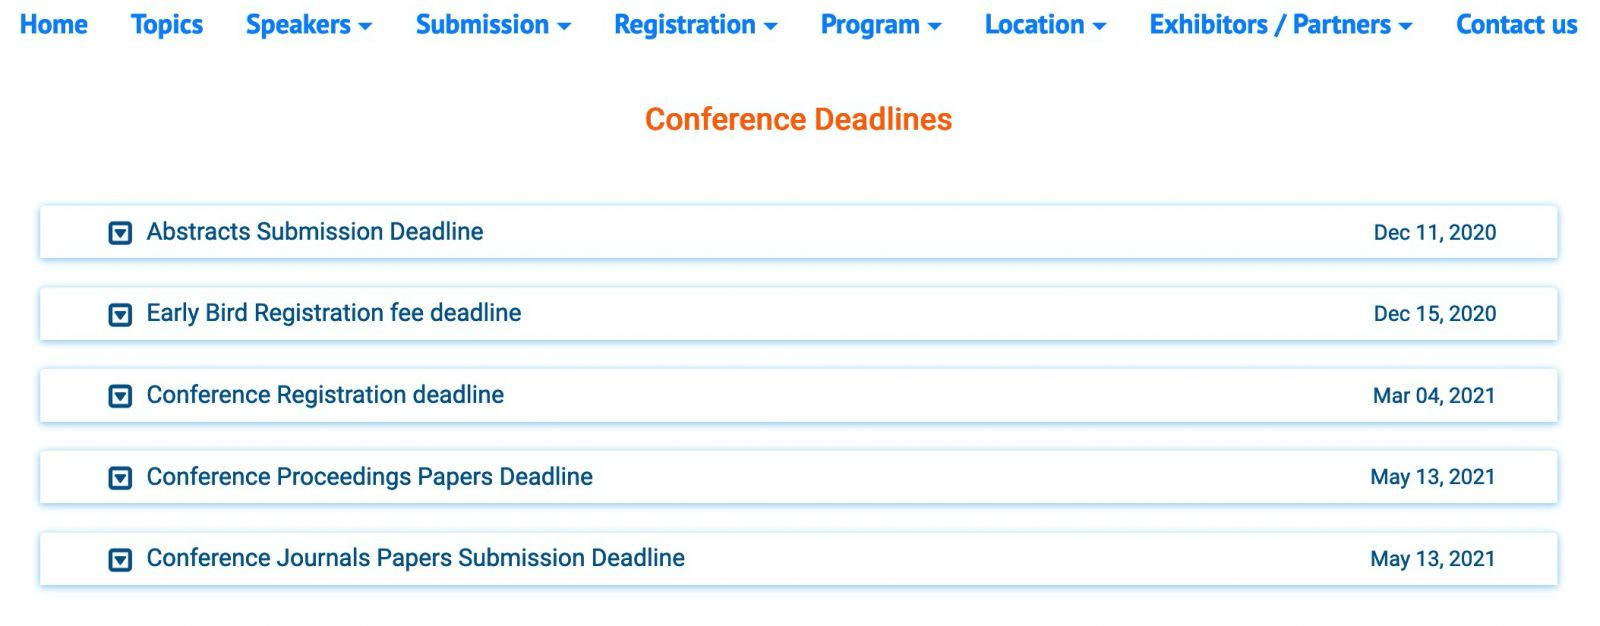 Conference deadlines page